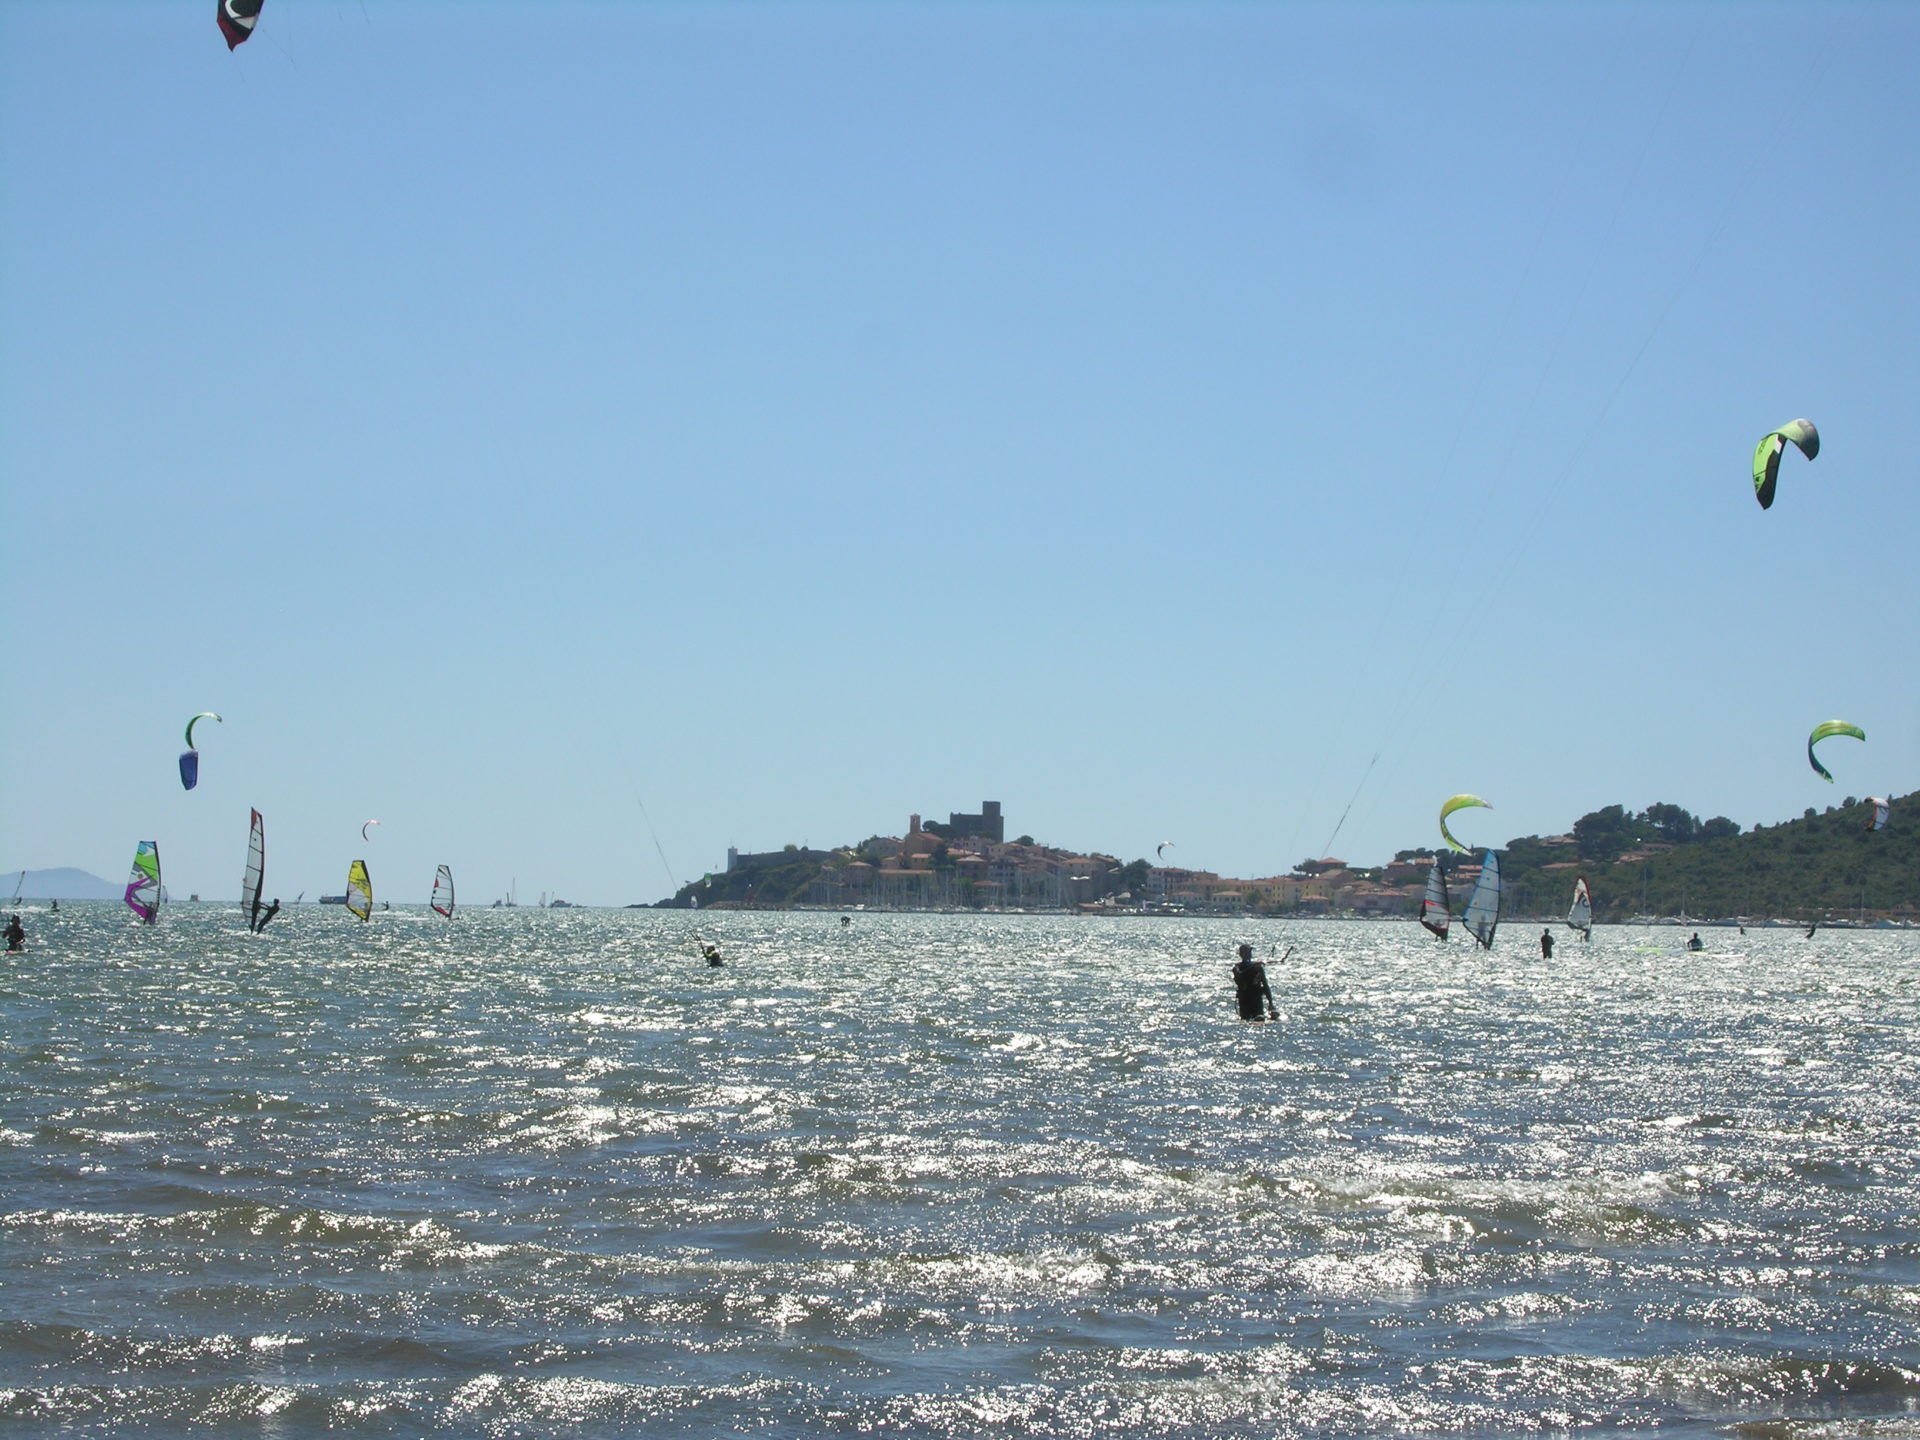 Talamone, Kite-surfing